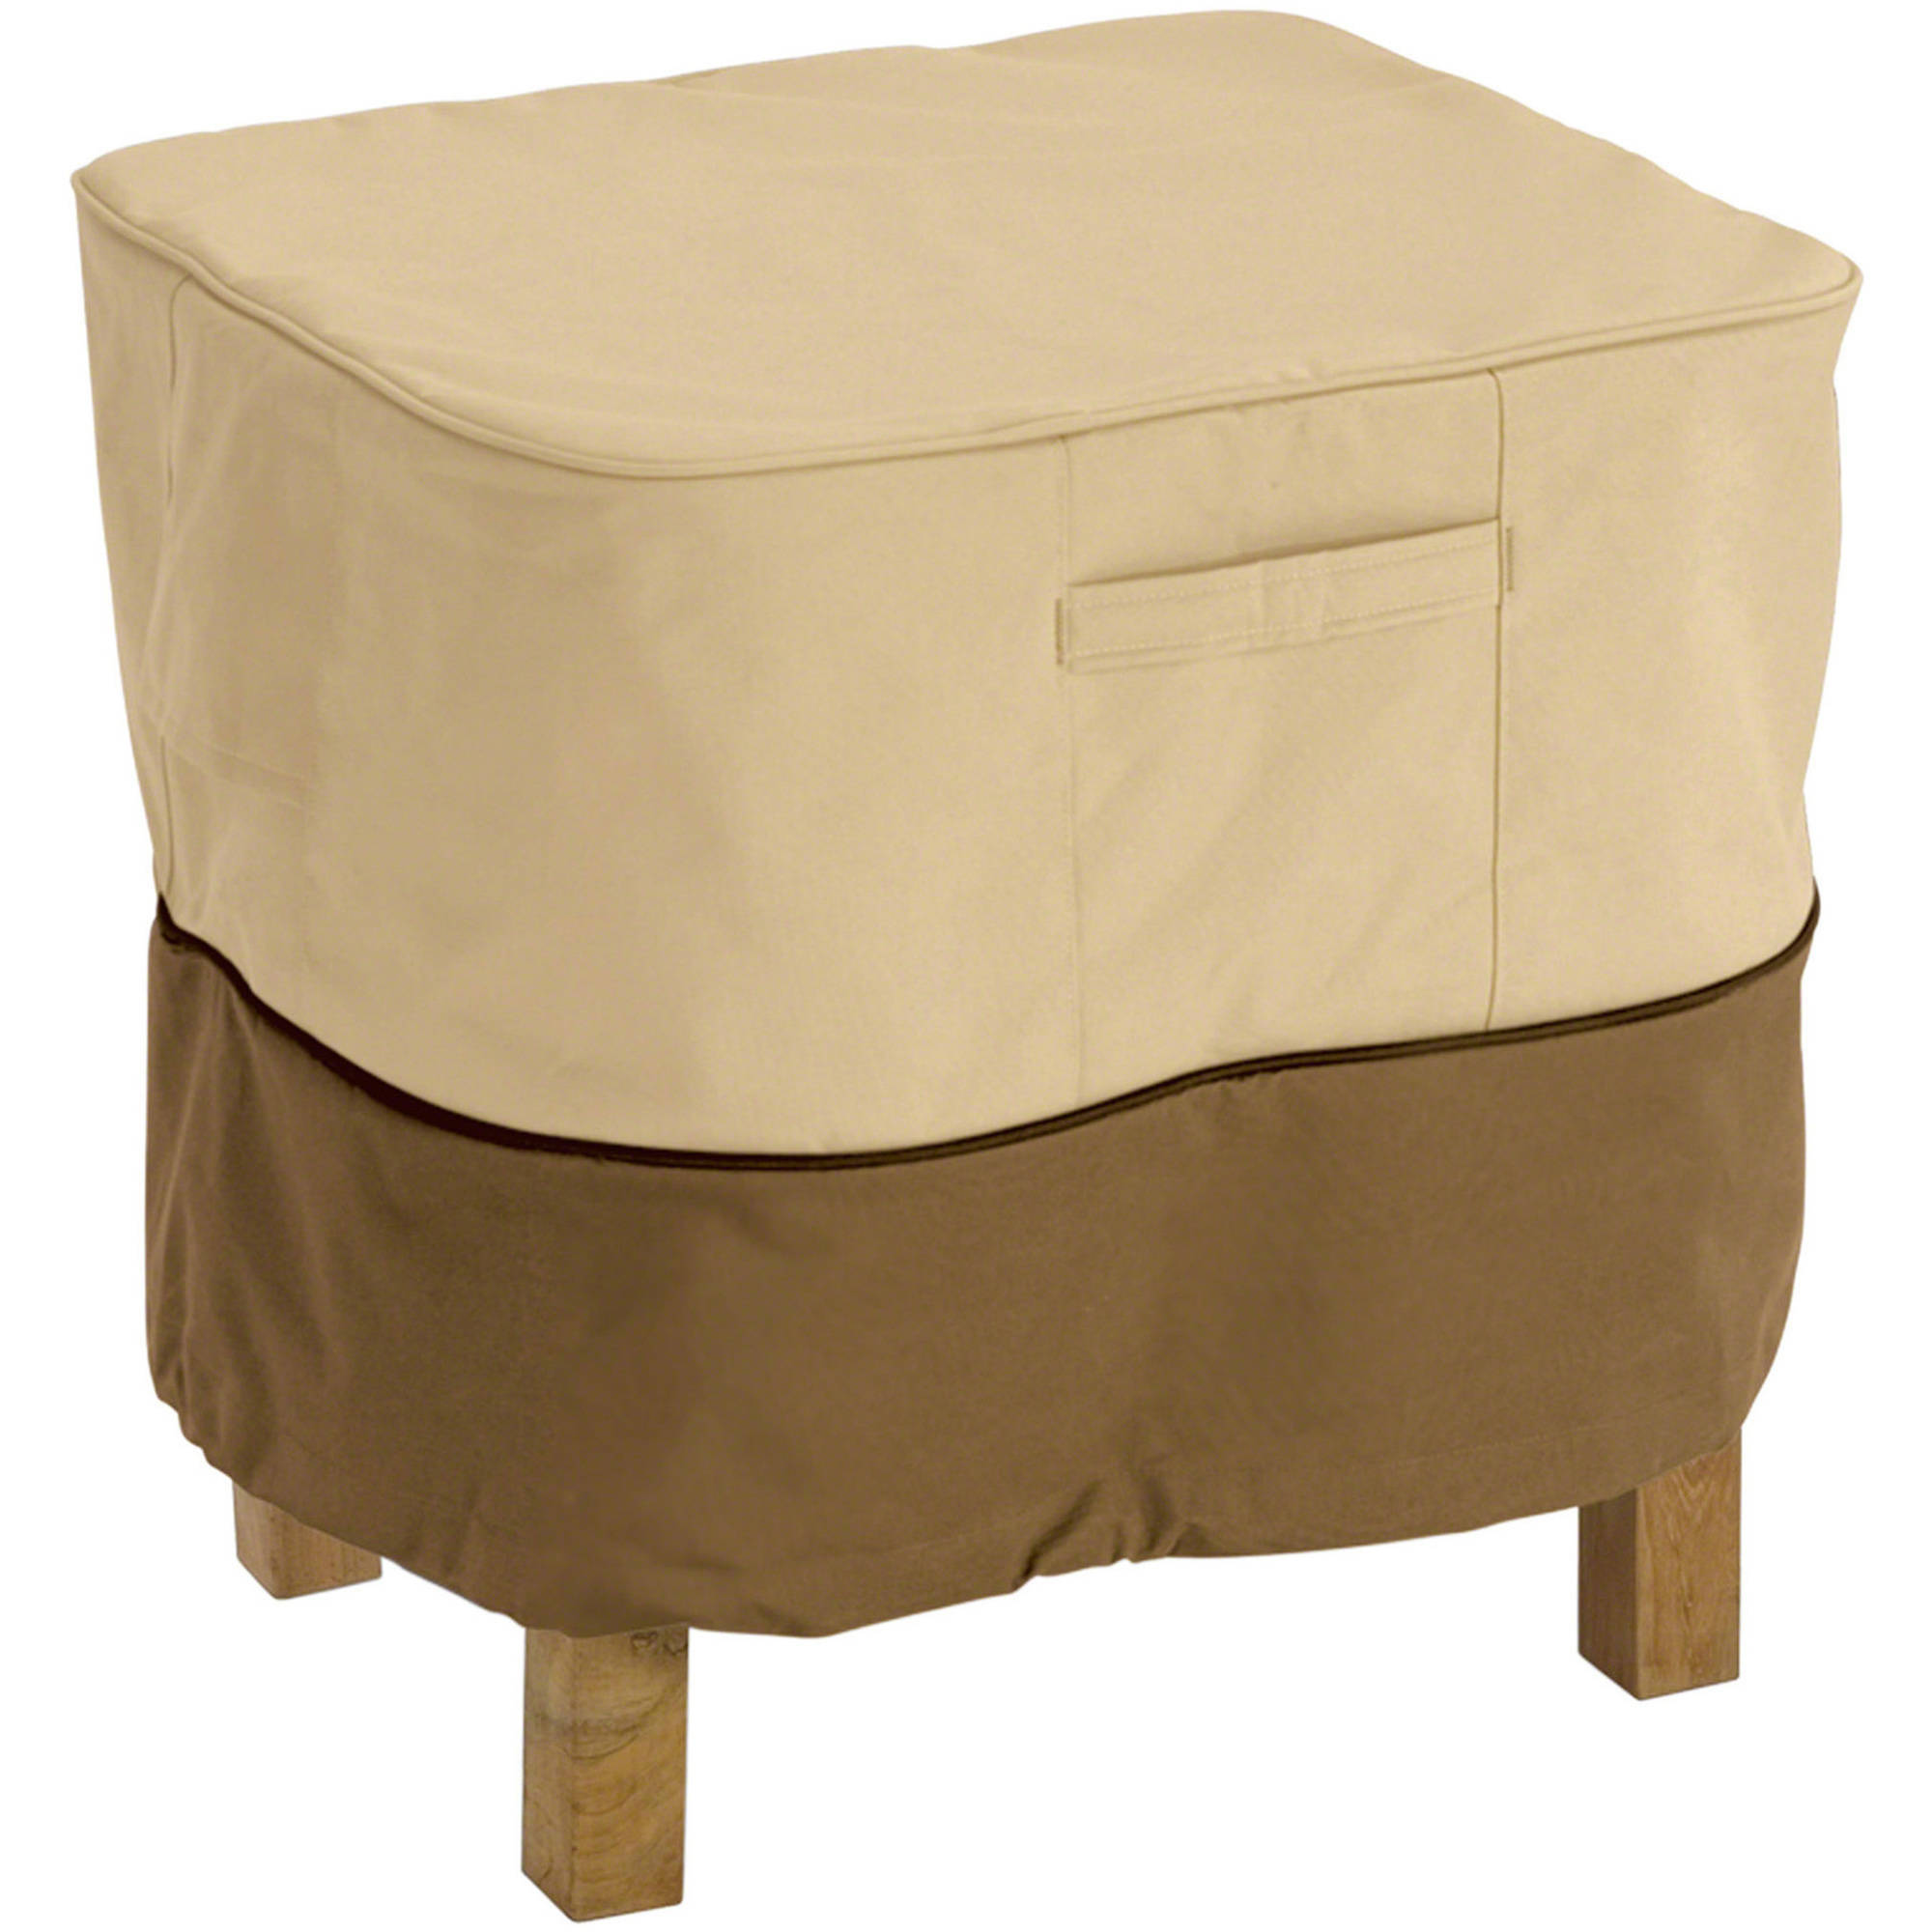 "Classic Accessories Veranda Square Patio Ottoman and Table Furniture Storage Cover, fits up to 21""L x 21""W"